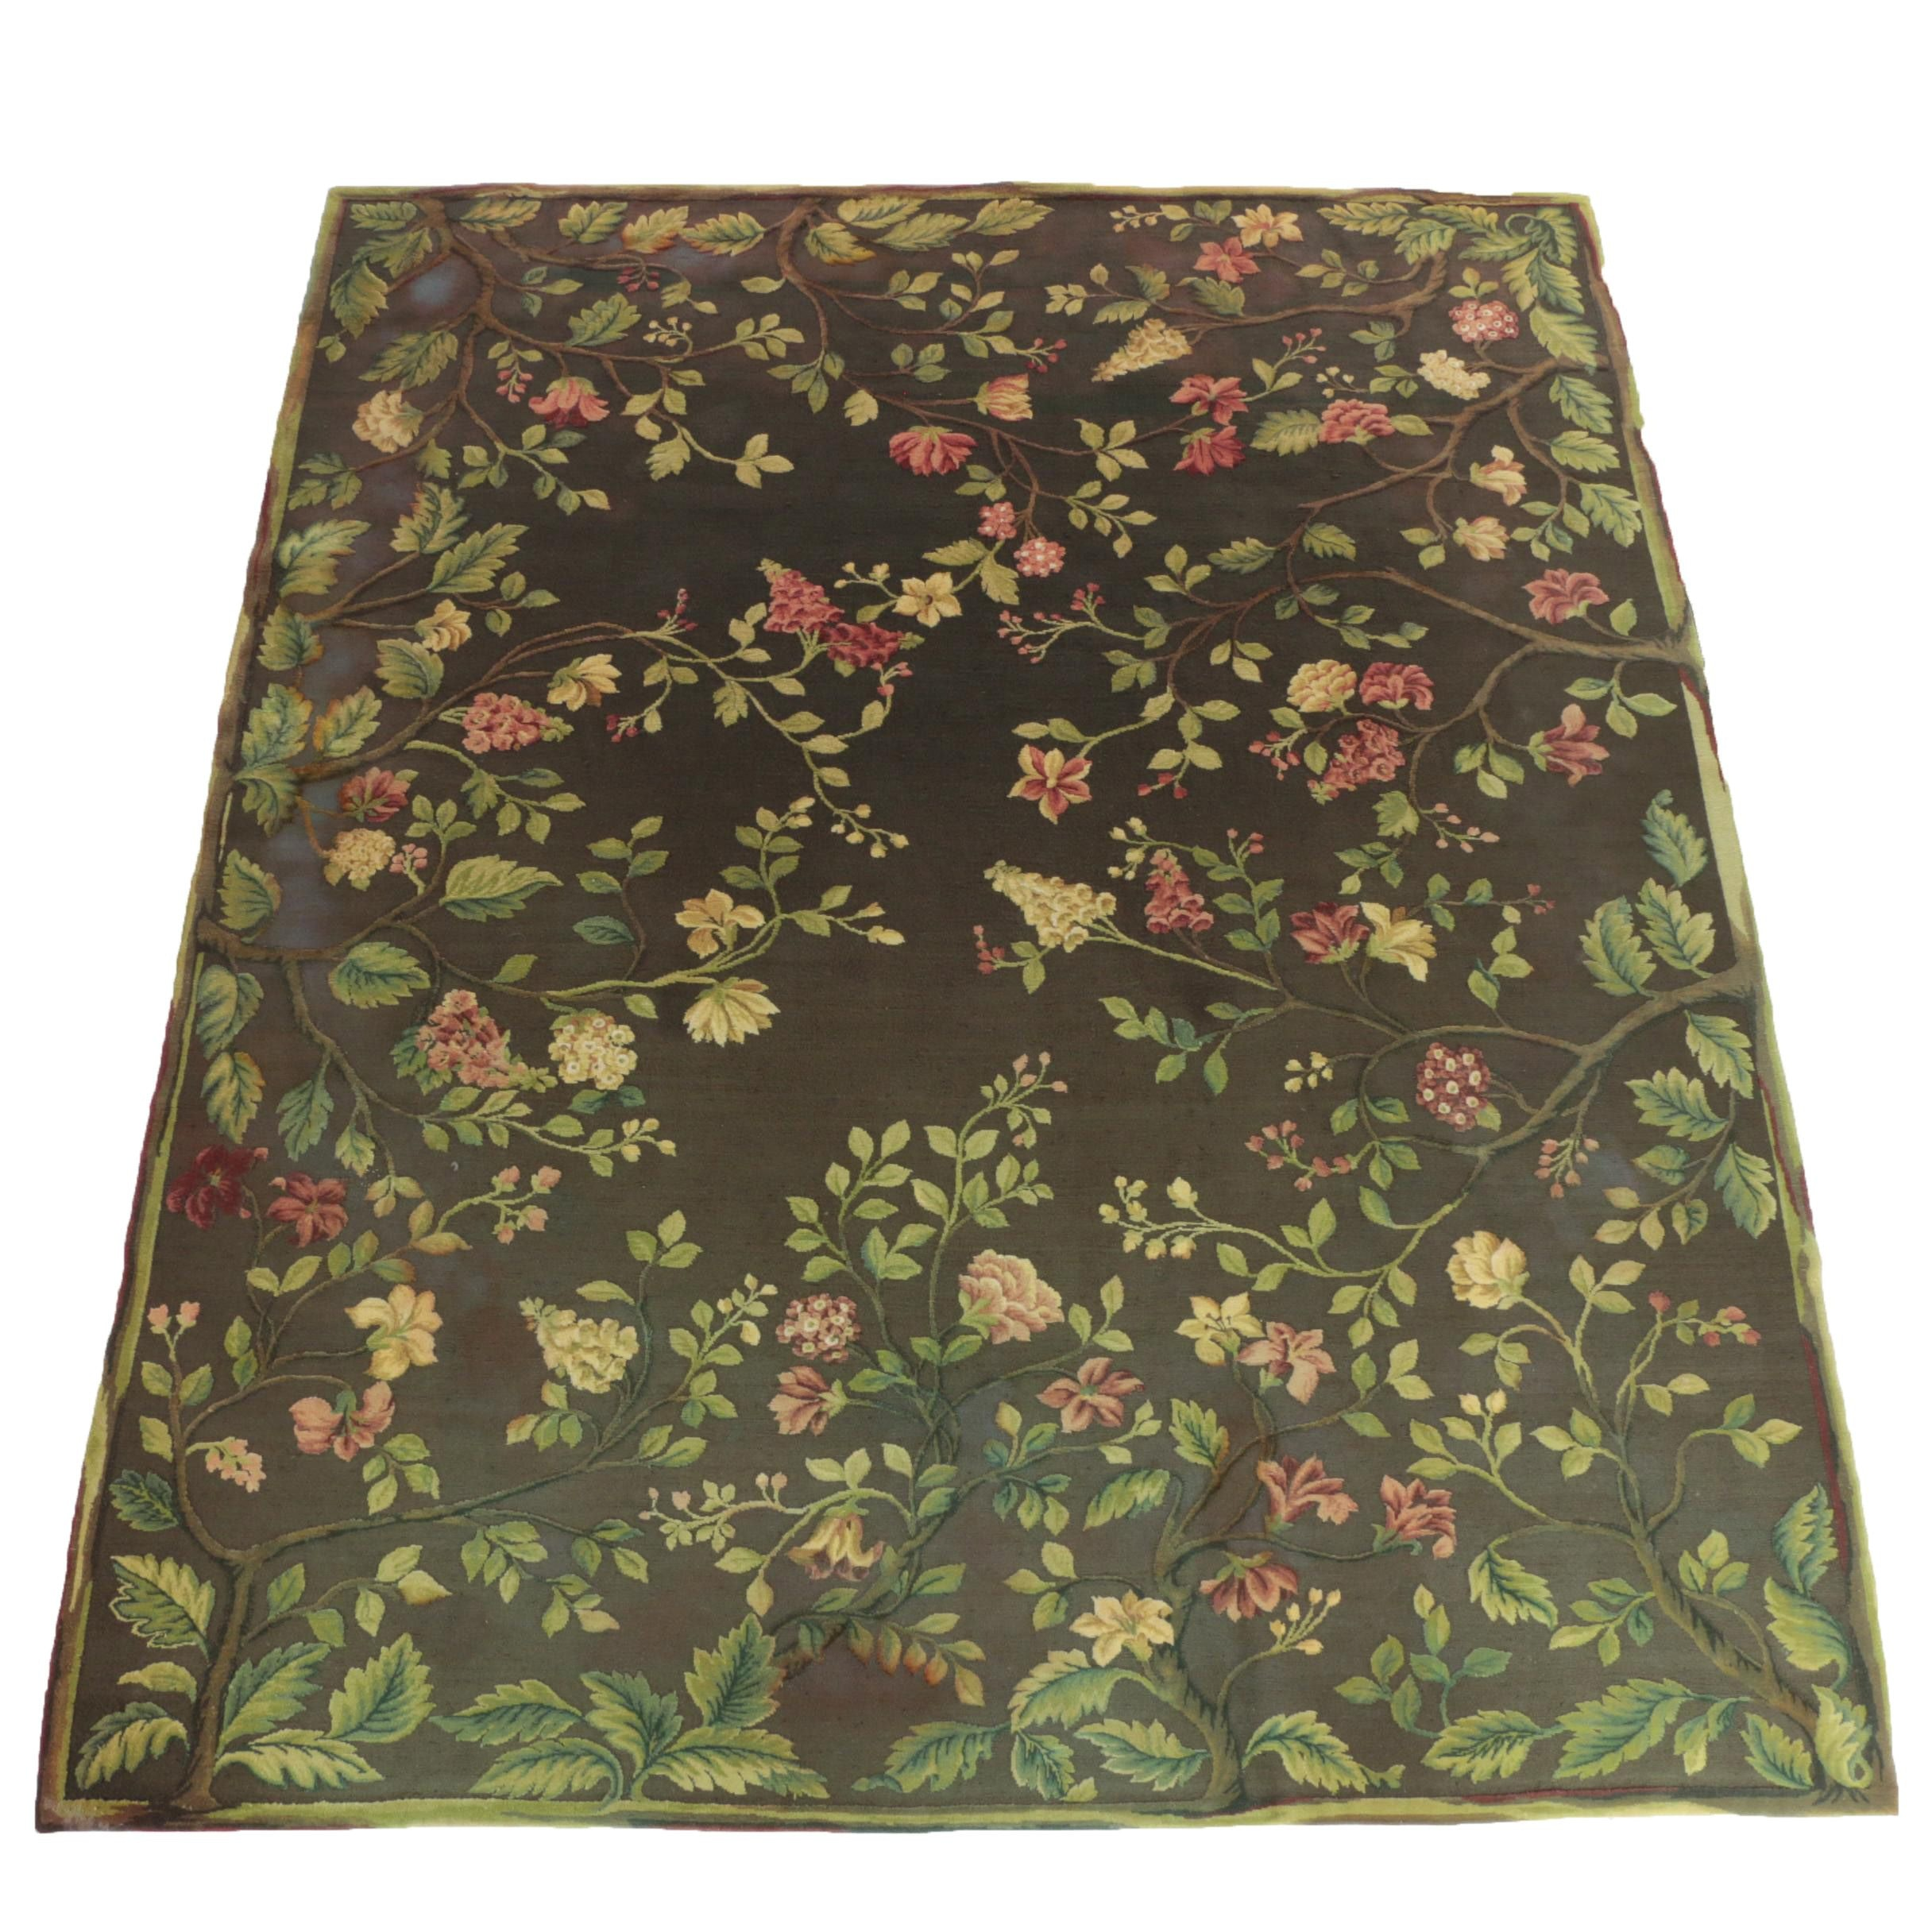 Woven Floral and Foliate Textured Wool Room Size Rug